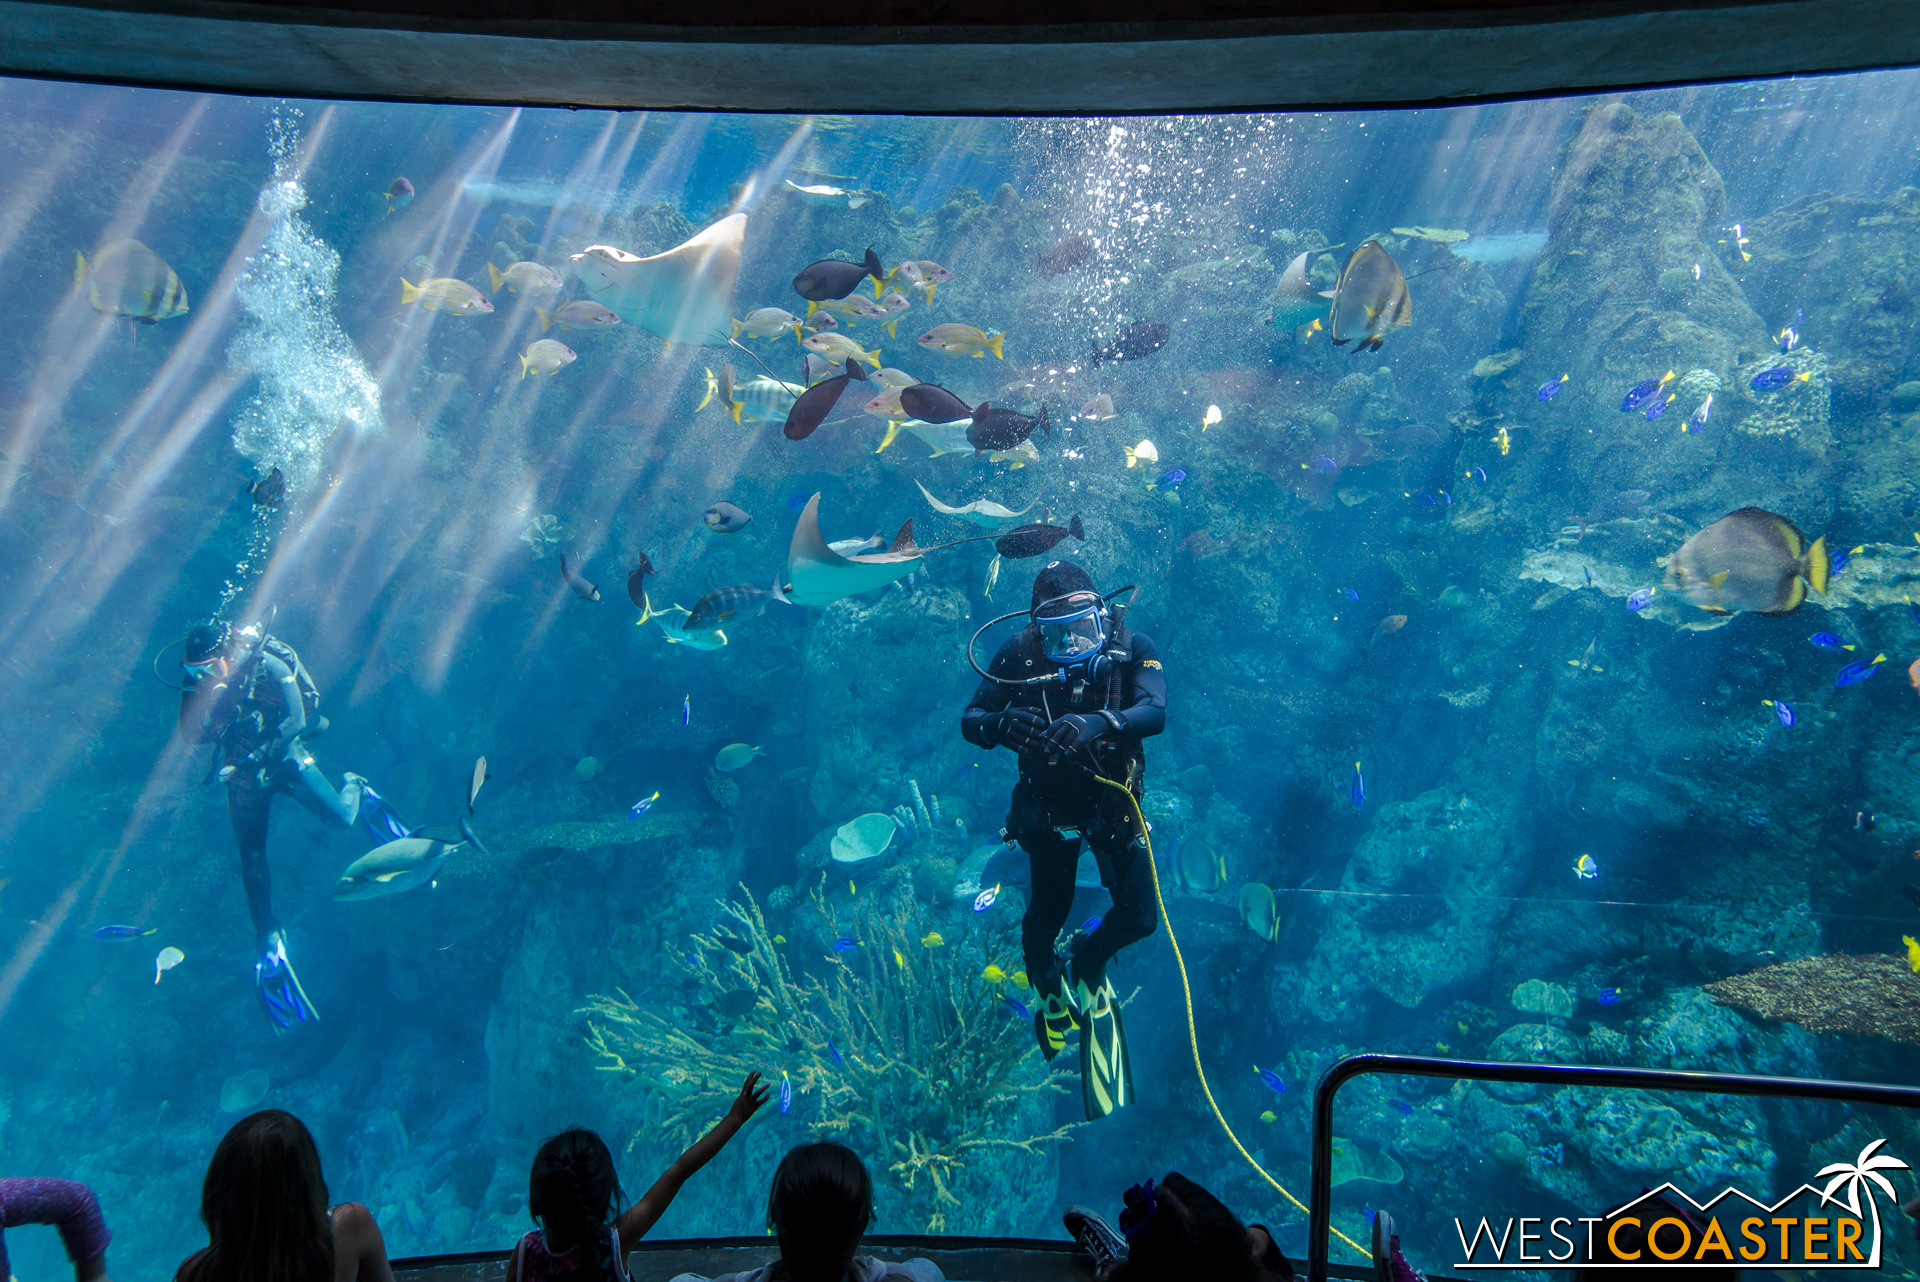 There are also educational shows featuring SCUBA divers teaching viewers about the oceans and species featured in this tank.